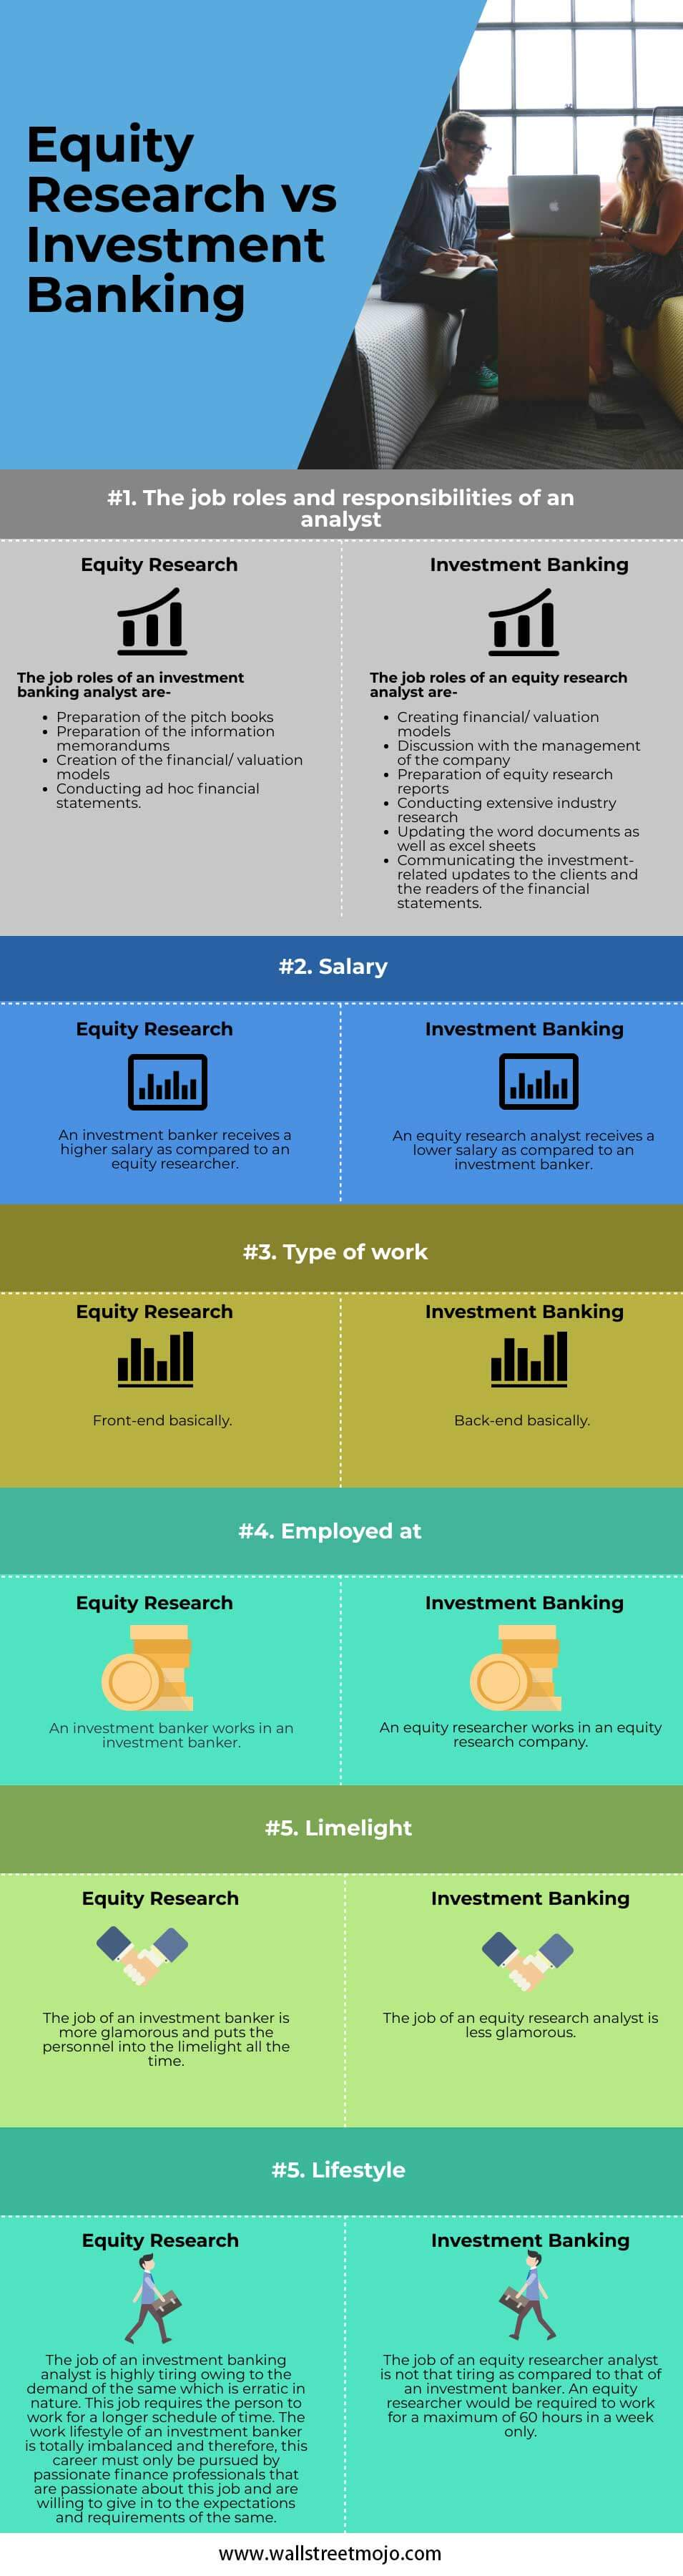 Equity-Research-vs-Investment-Banking-info